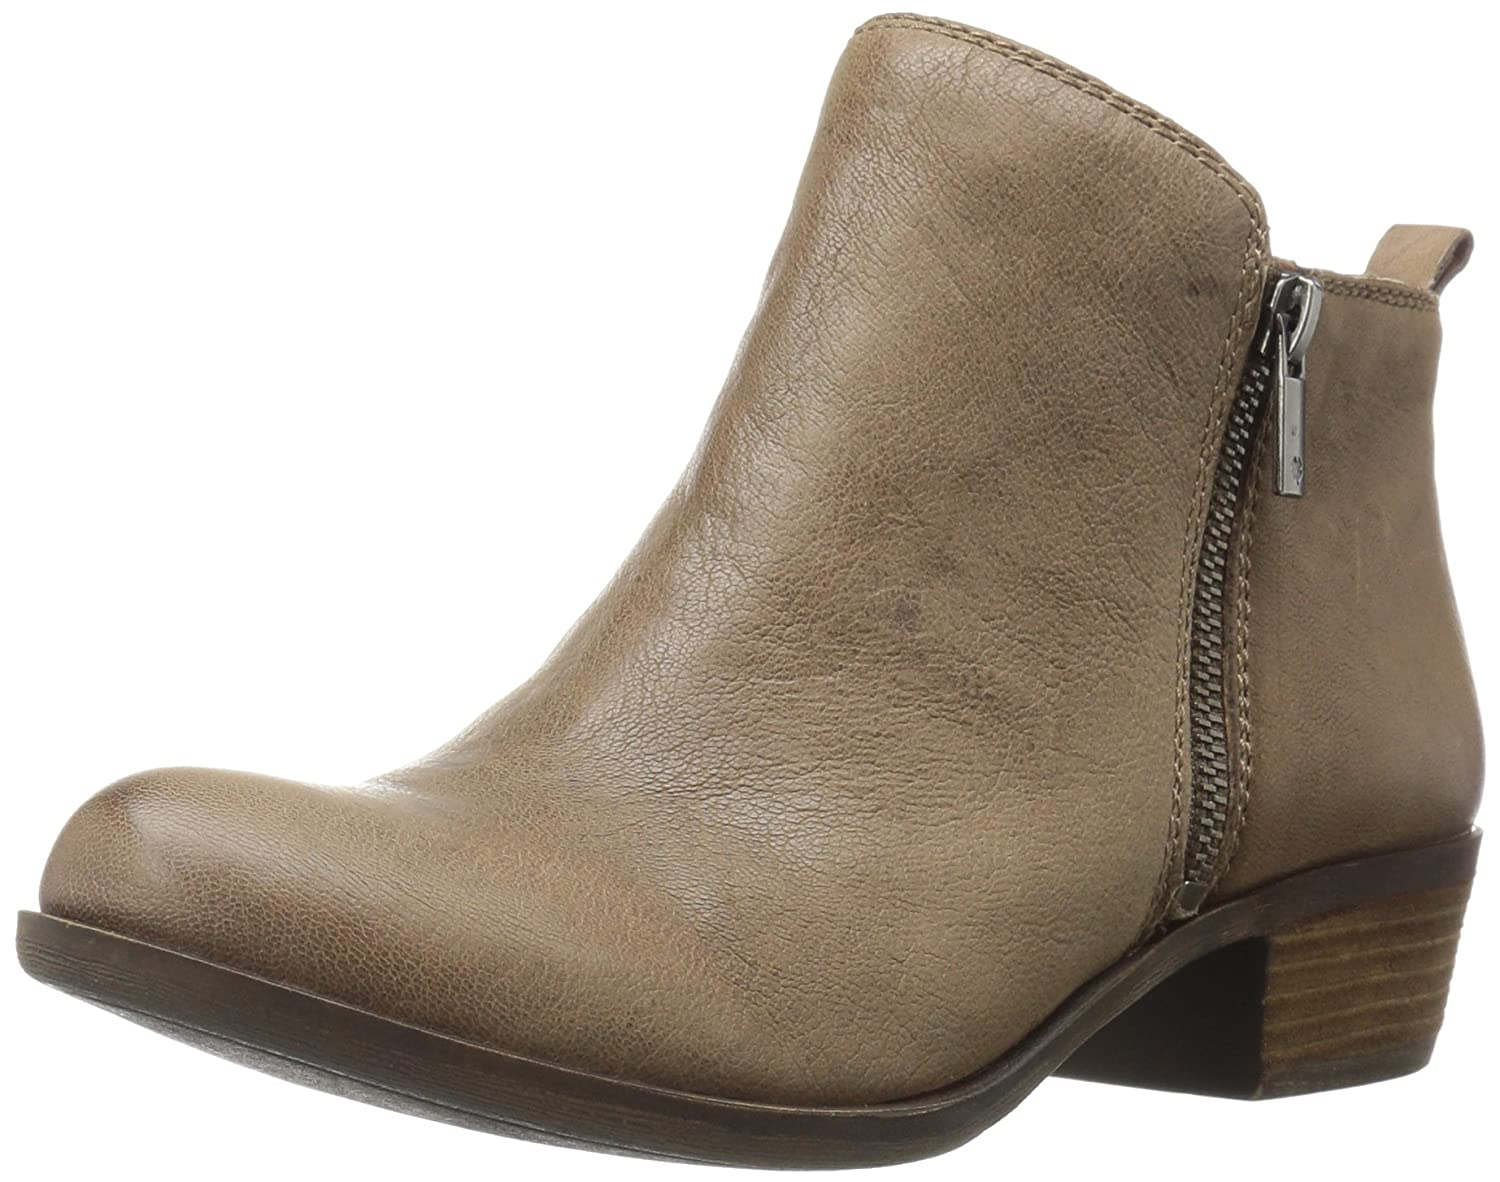 Lucky Brand Women's Basel Boot B071Y4ZWQ4 12 B(M) US|Brindle